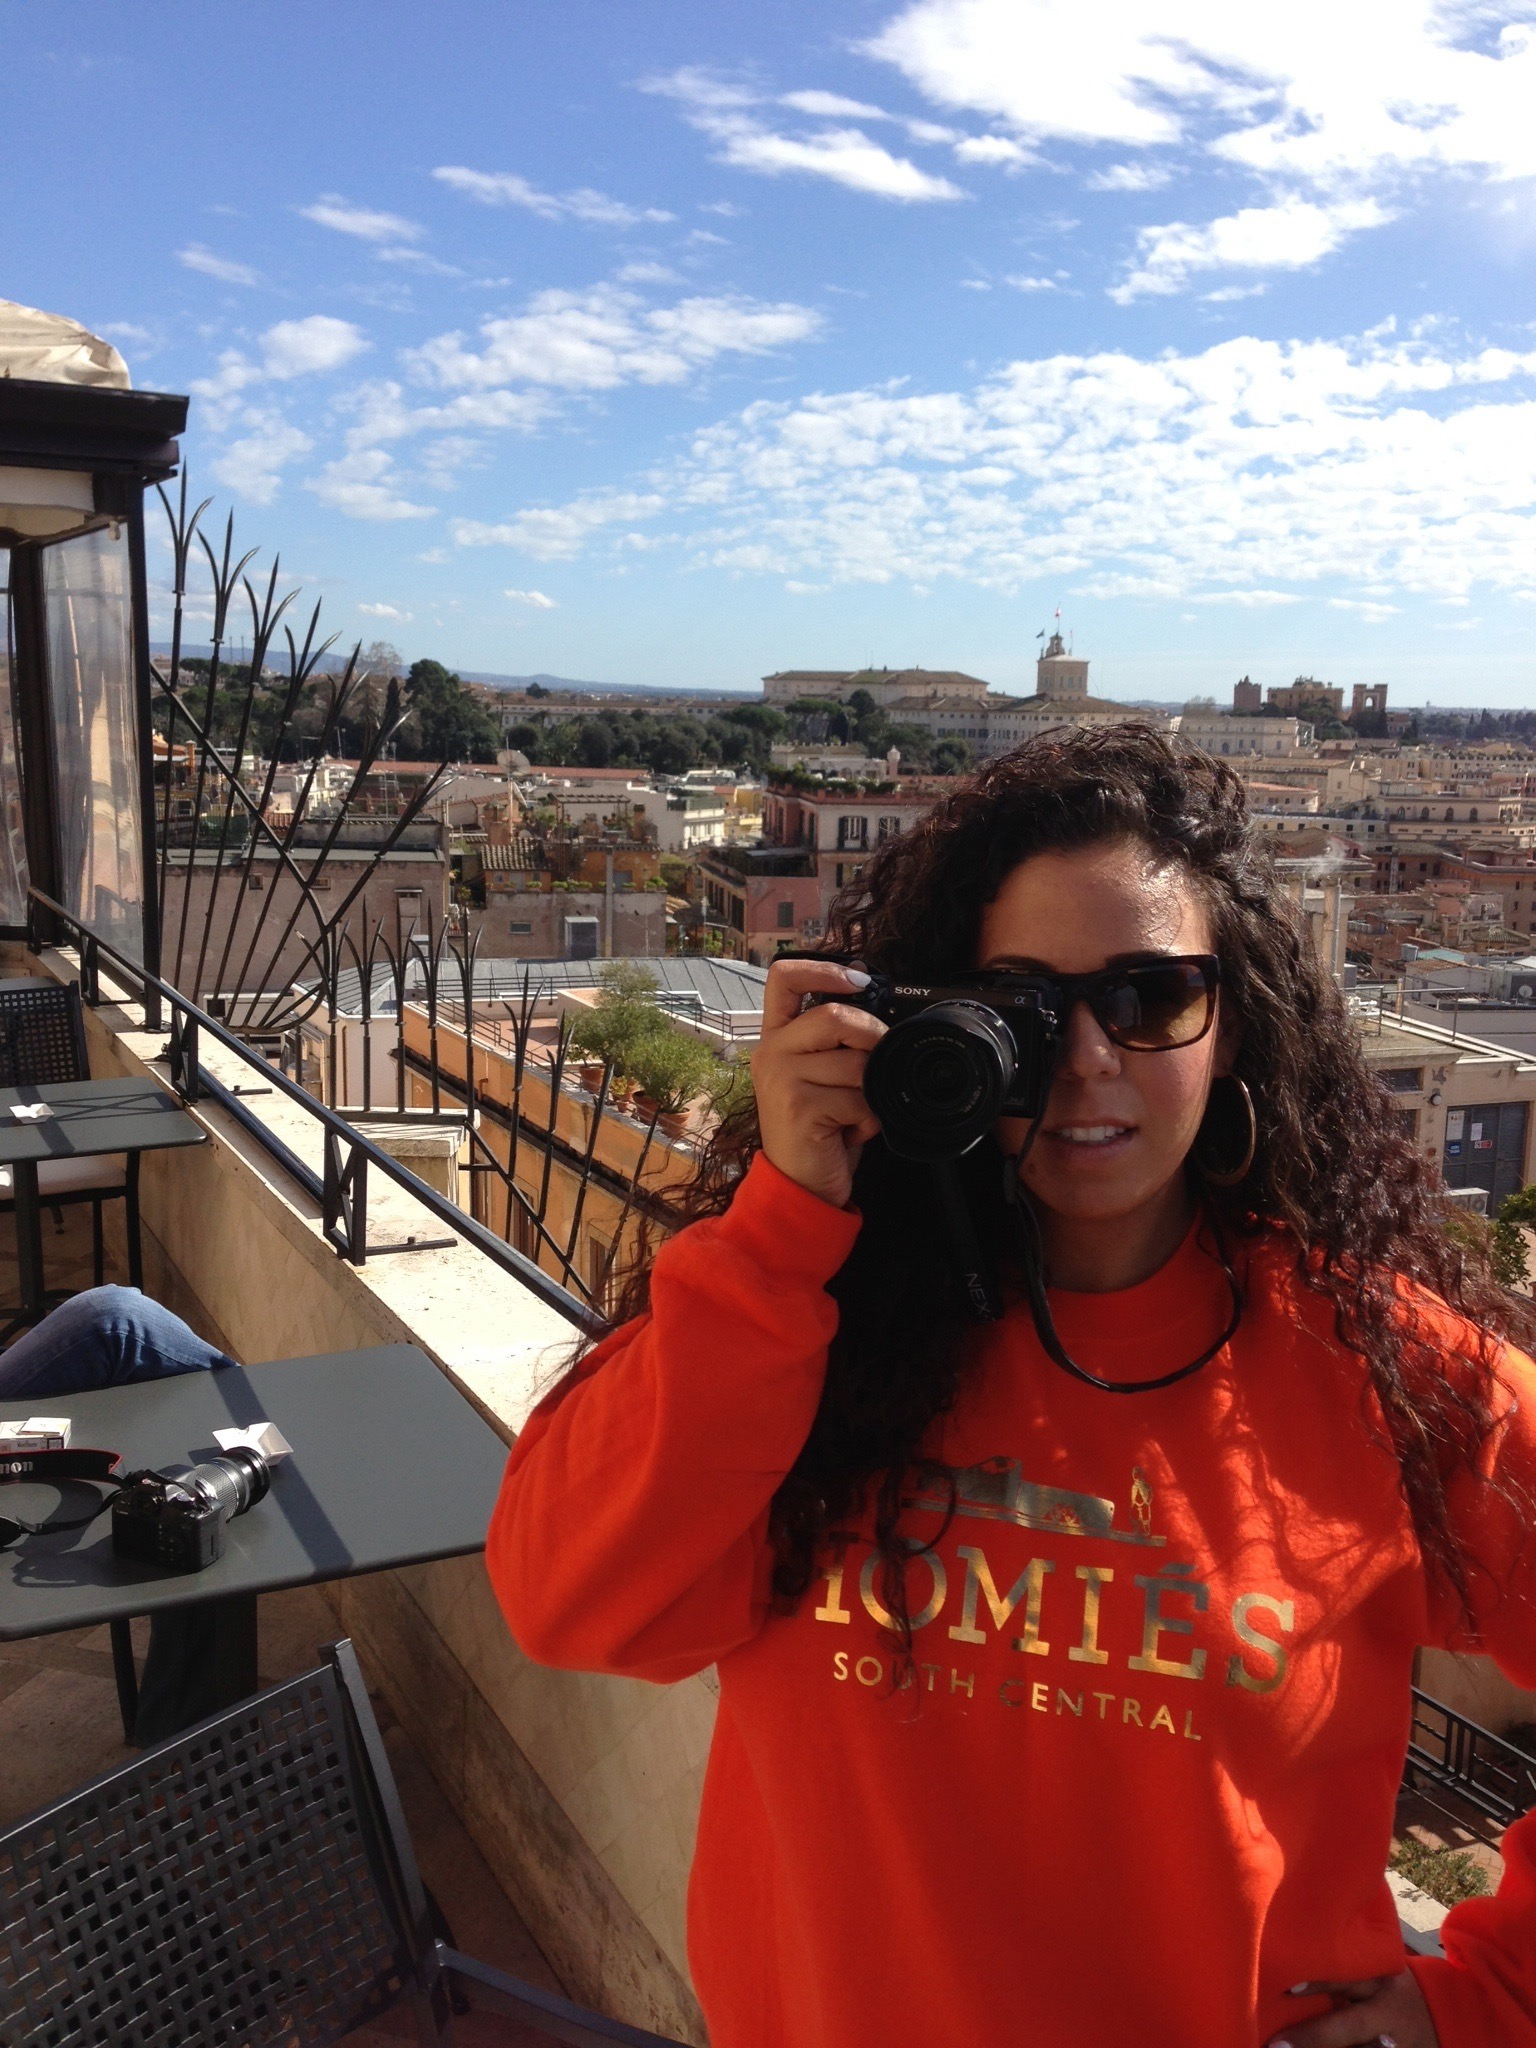 Taking pictures in Rome, Italy